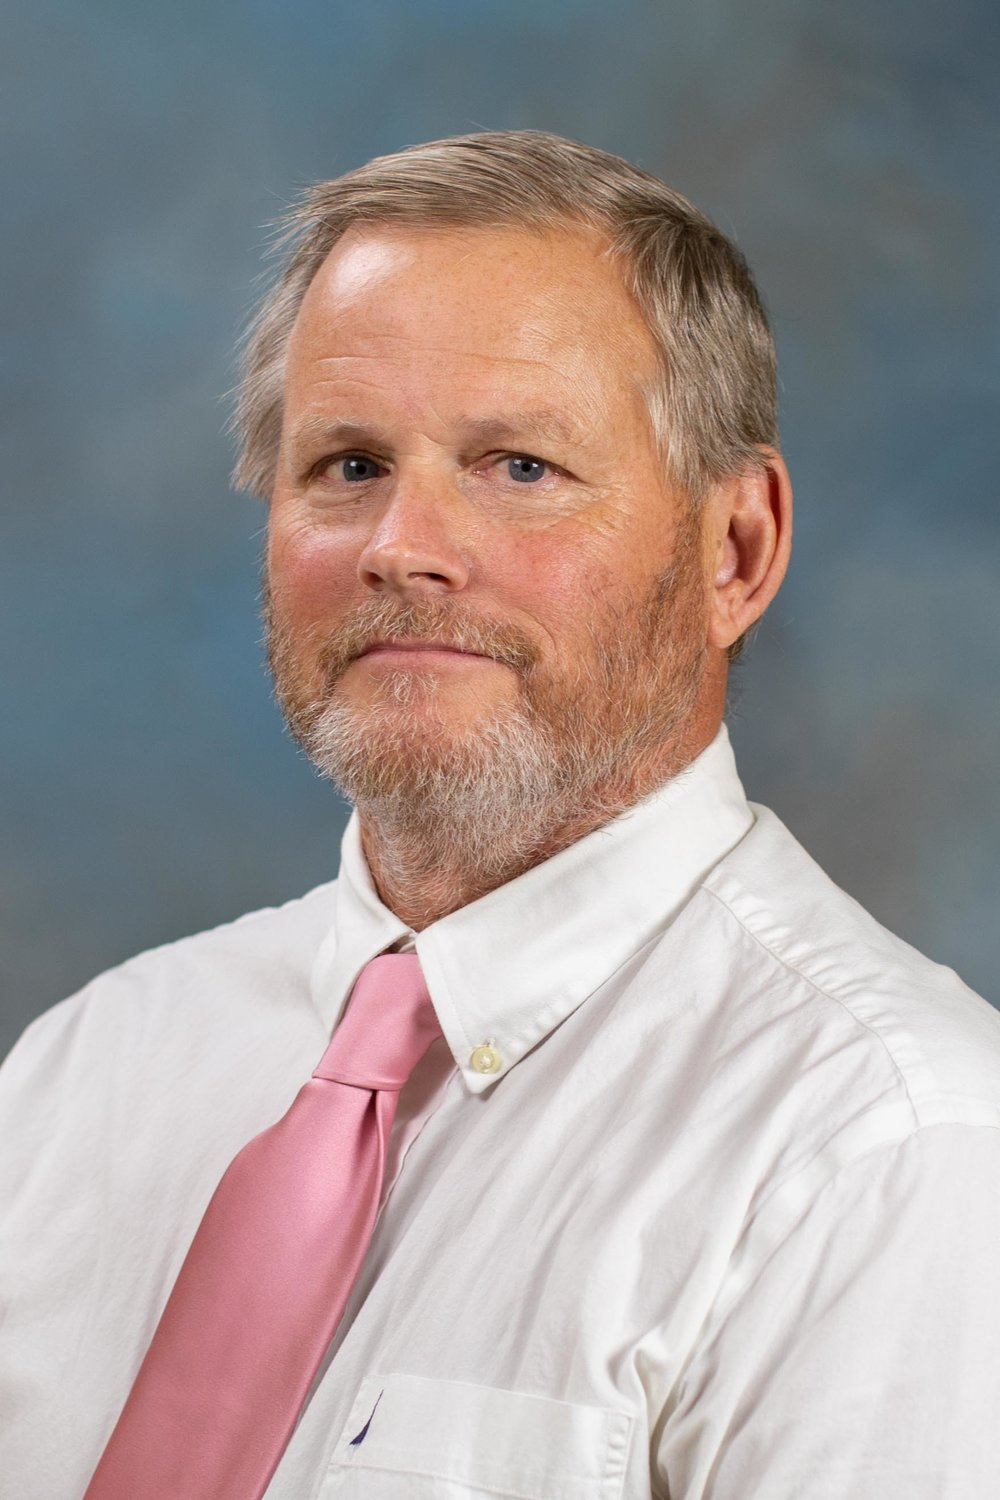 Dr. Richard Martin - Vice-Chairman of the Board; Governance Committee Chair